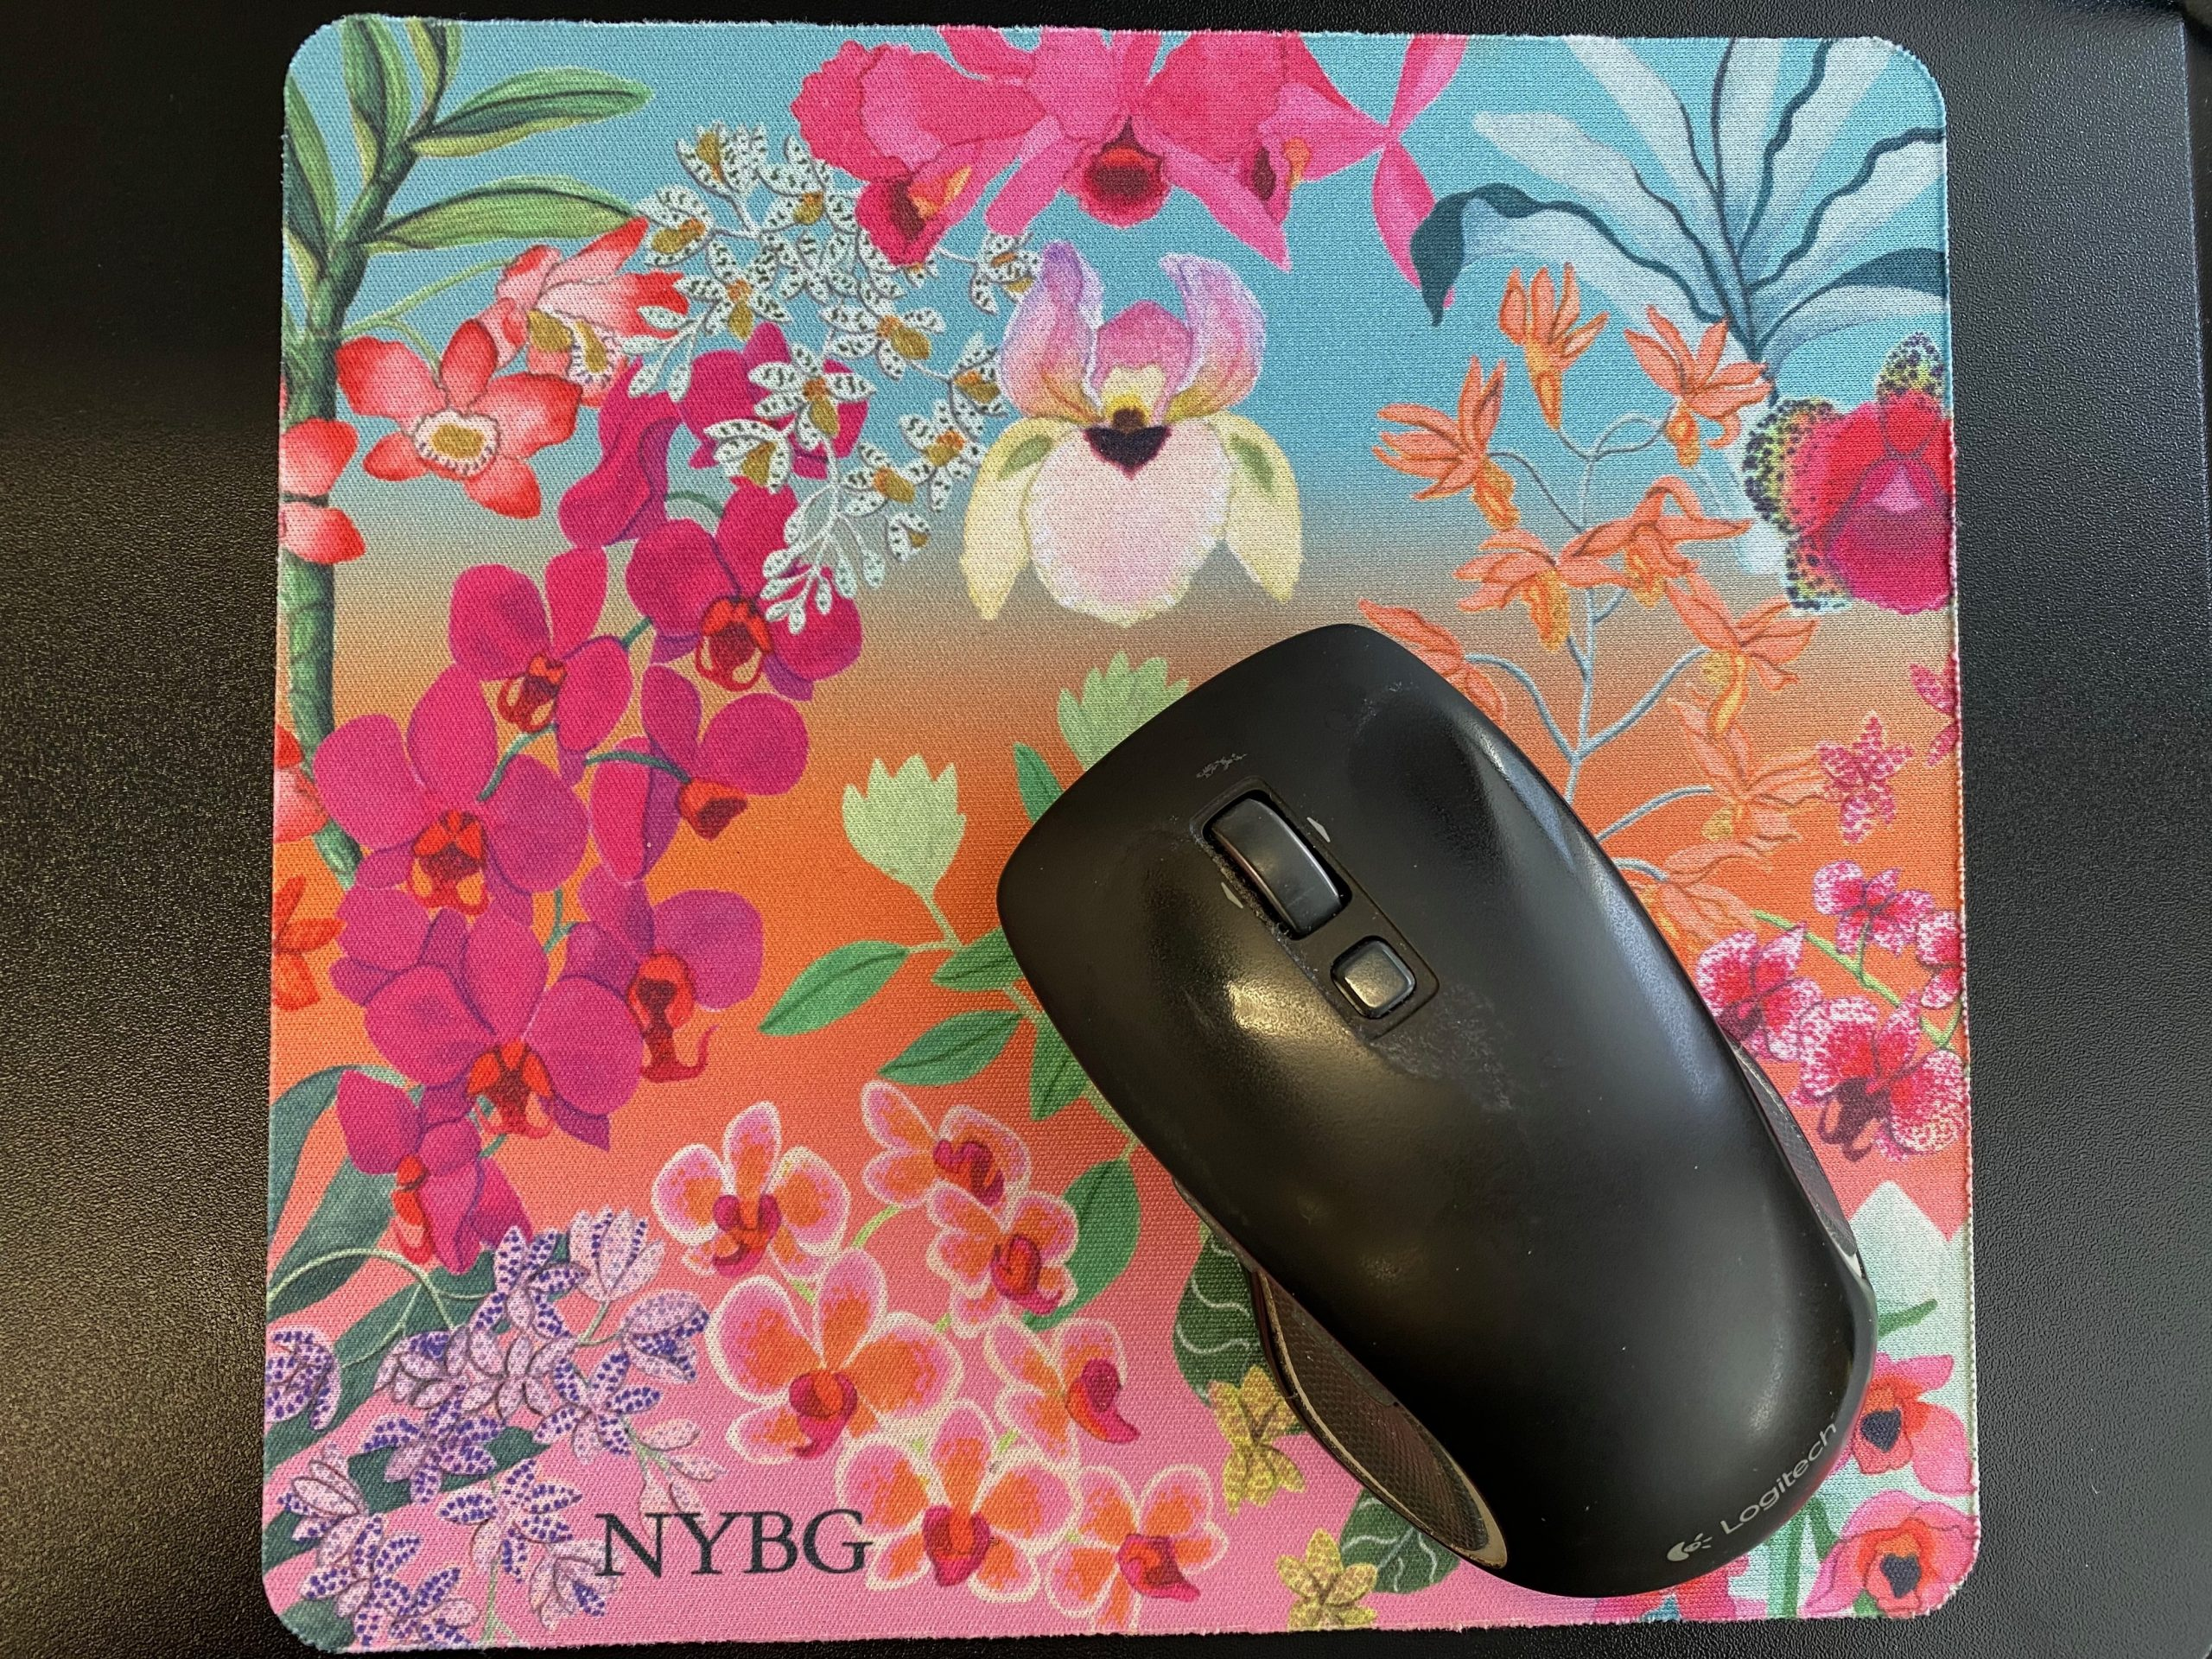 NYBG Orchid Show mouse pad